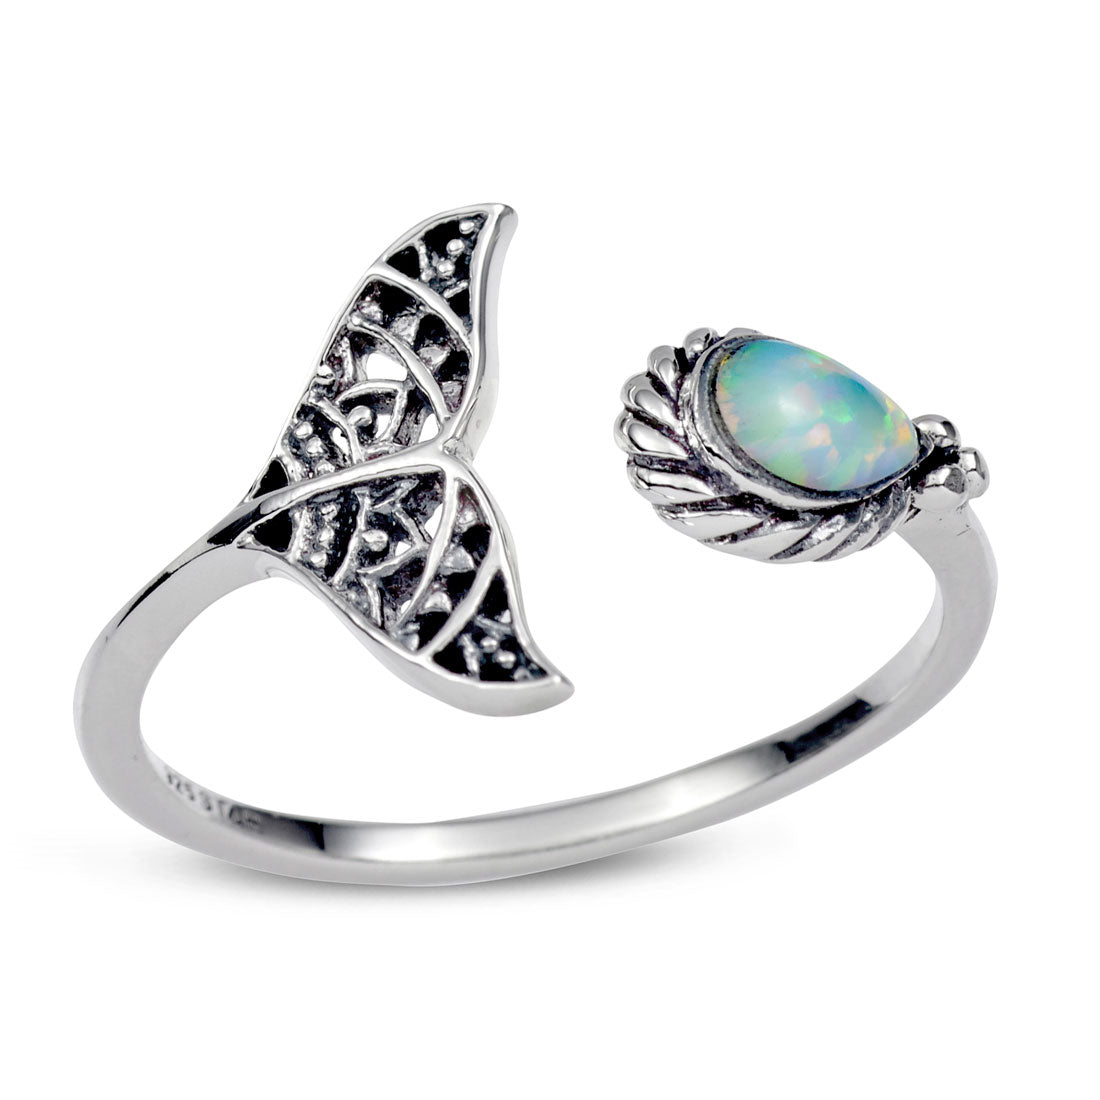 Under the Sea Opal Ring